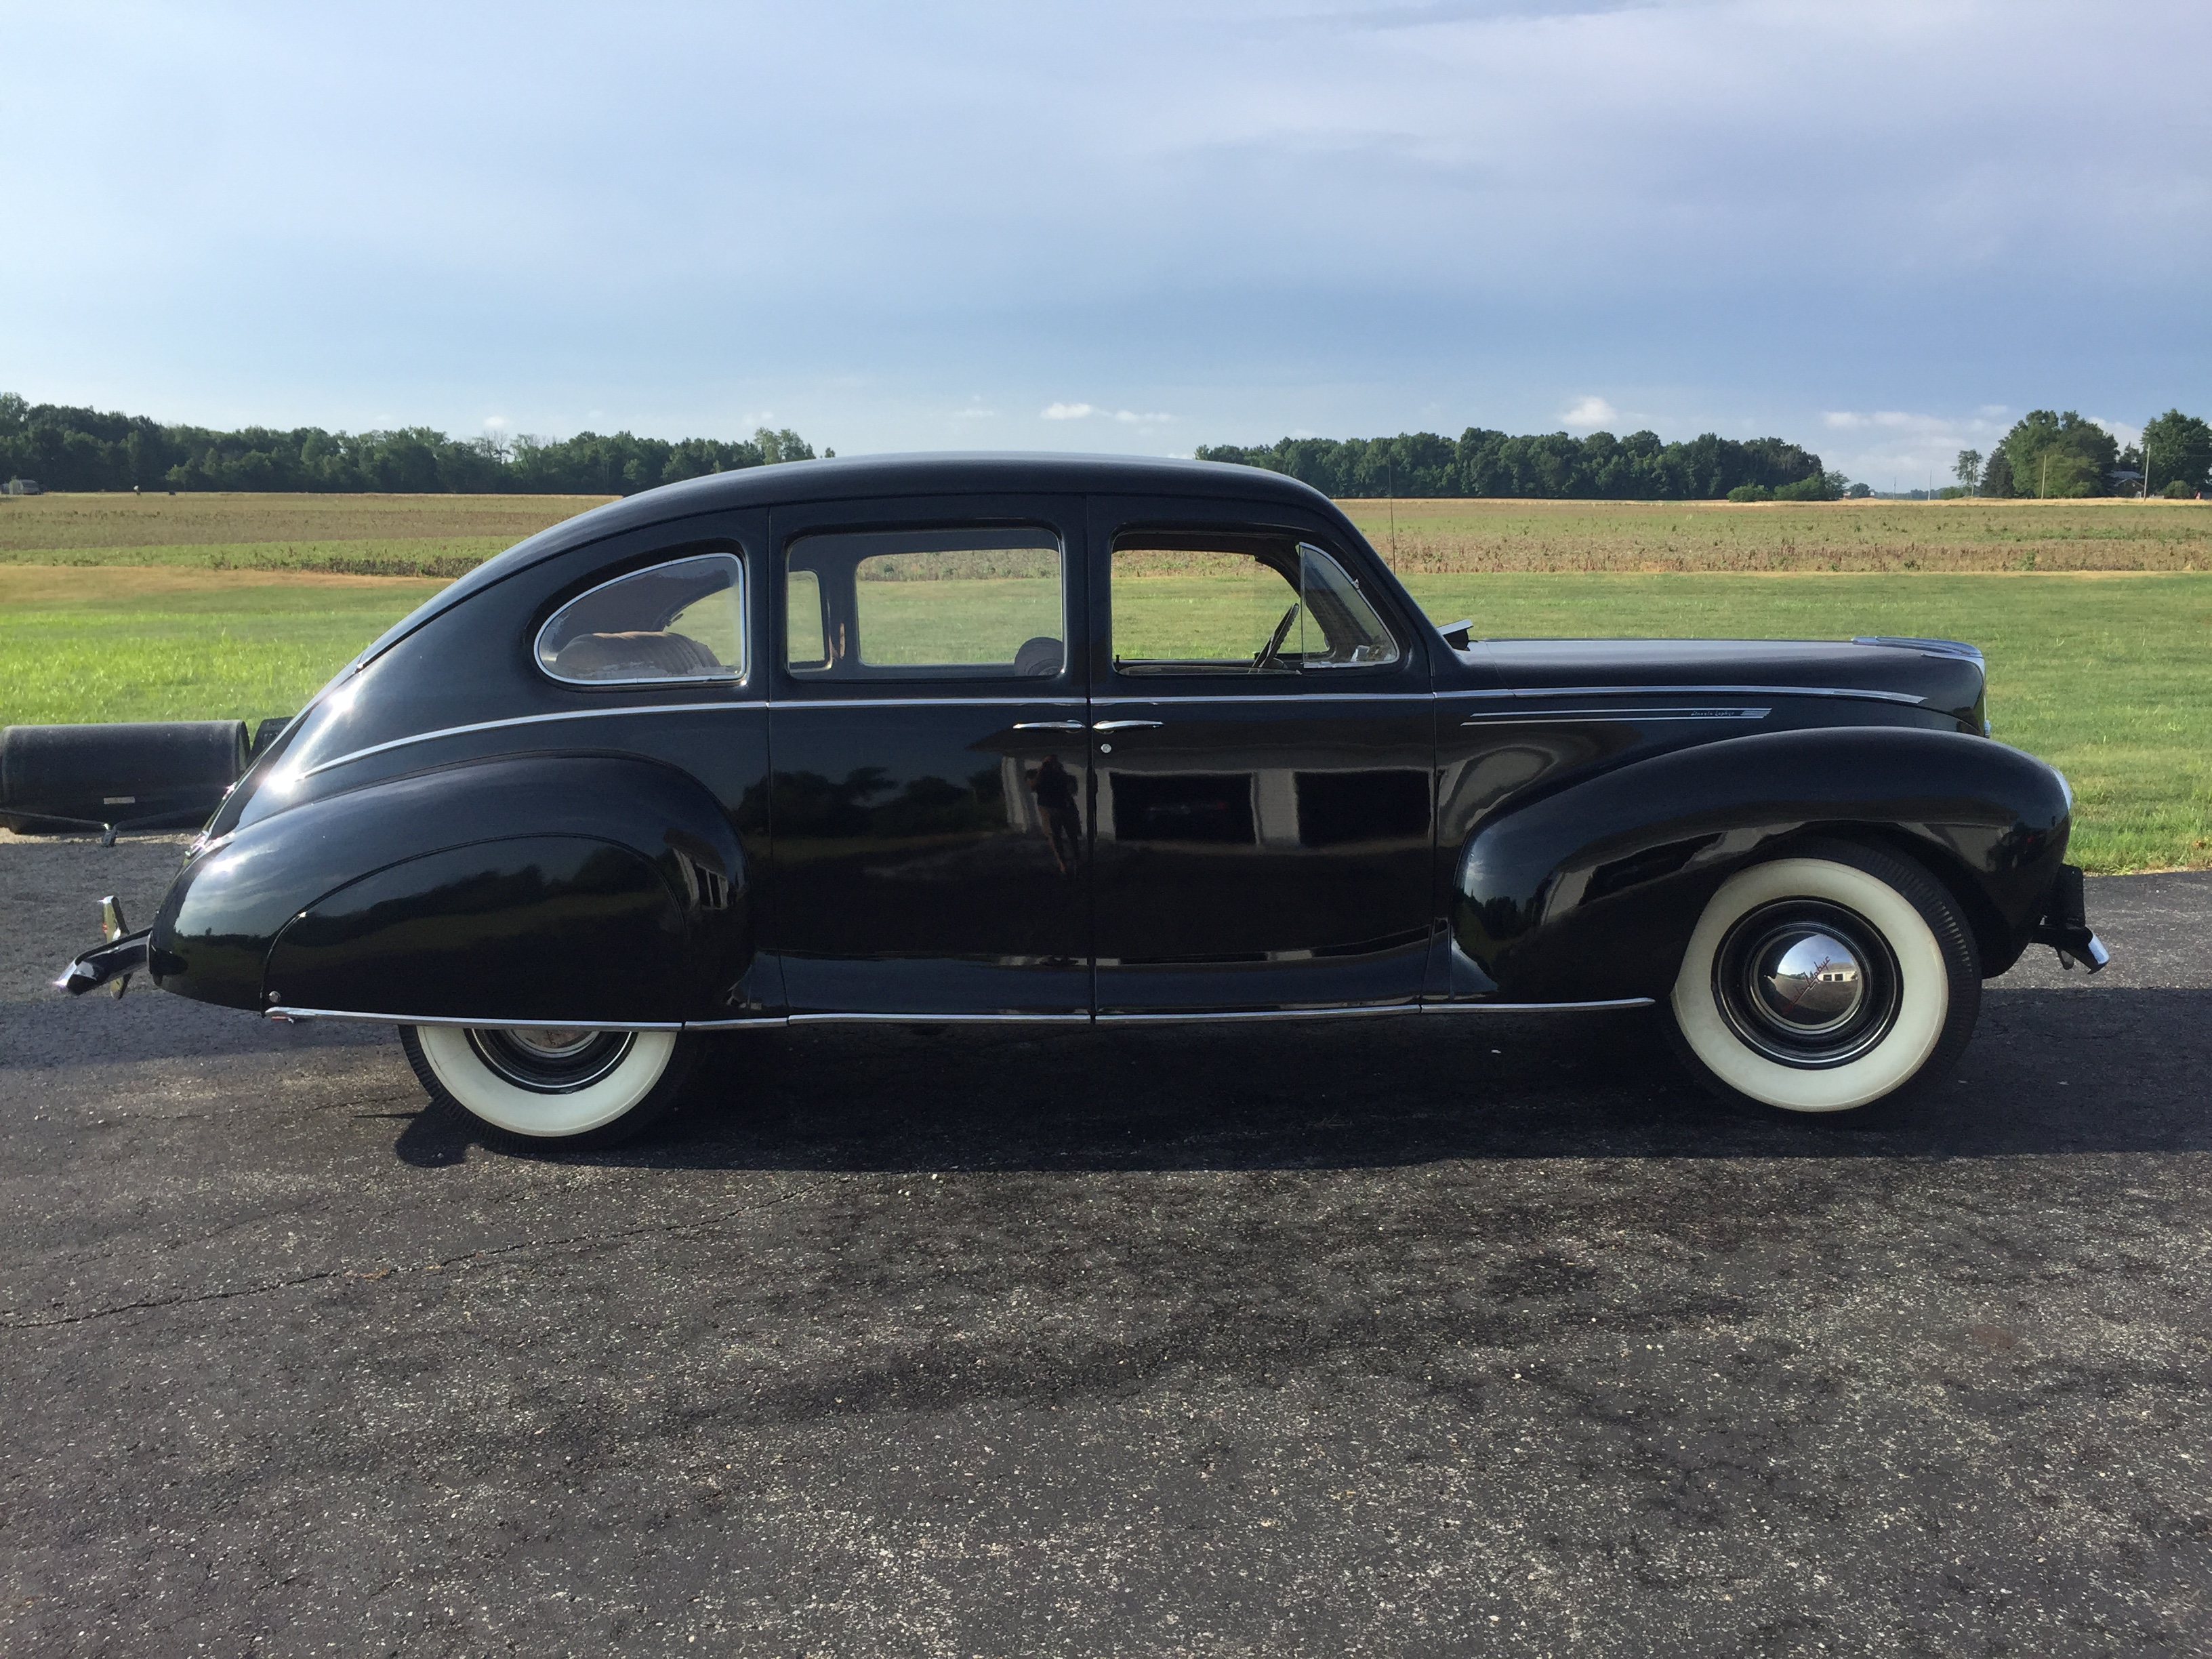 1940 Lincoln-Zephyr Sedan